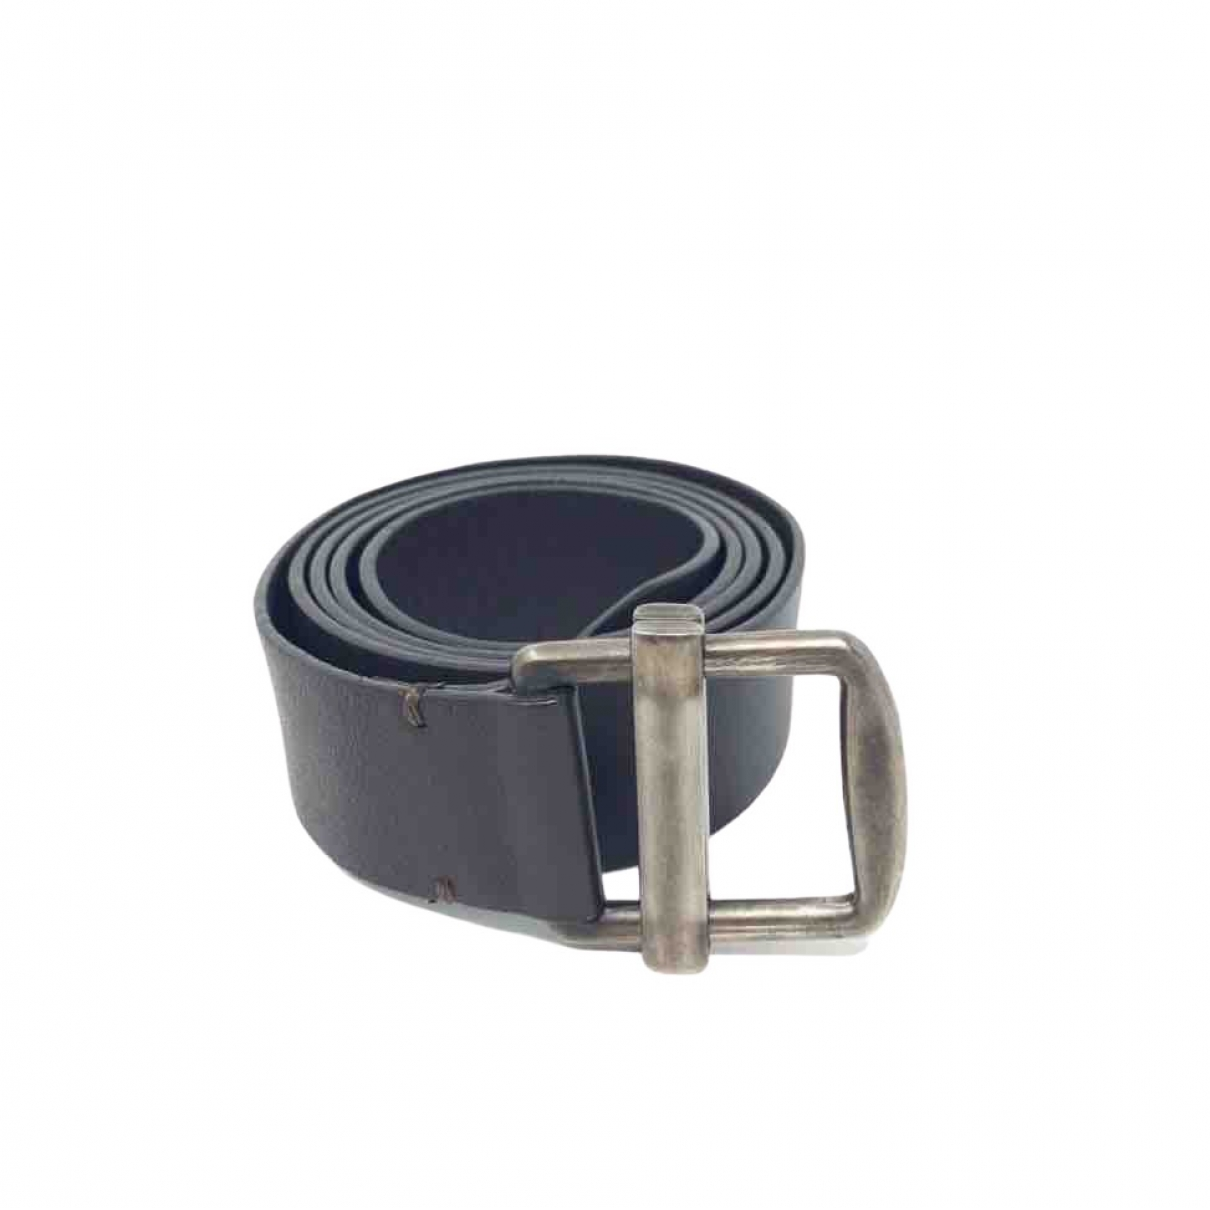 Marni \N Brown Leather belt for Women L International